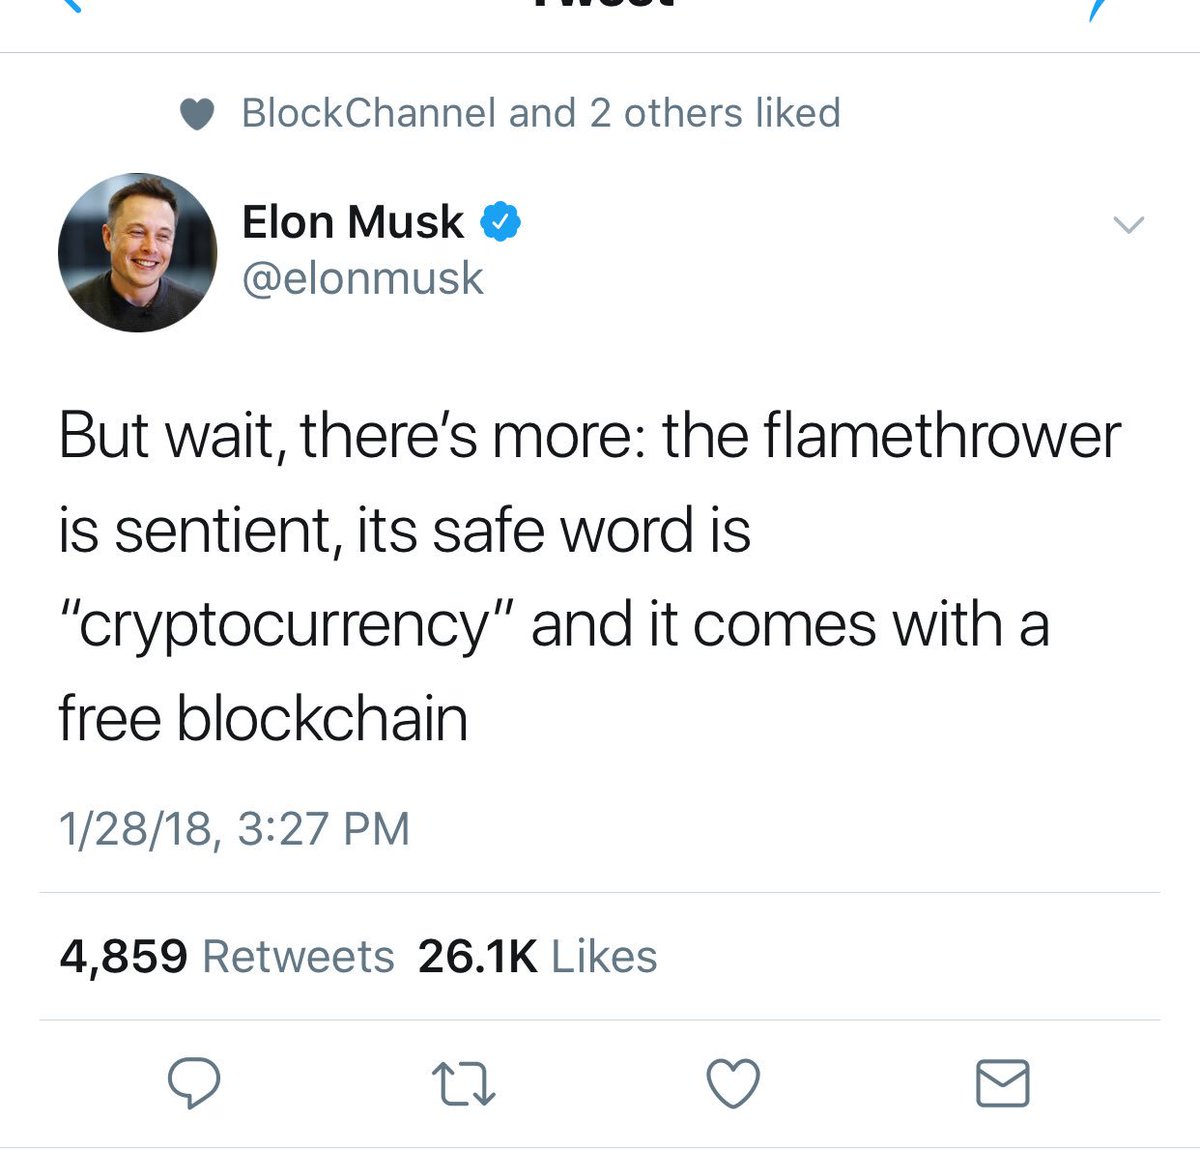 Altcoin Buzz On Twitter You Know They Say Elon Musk Is Satoshi Nakamoto He Does Not Claim To Be But He Did Just Pump Cryptocurrency And Blockchain